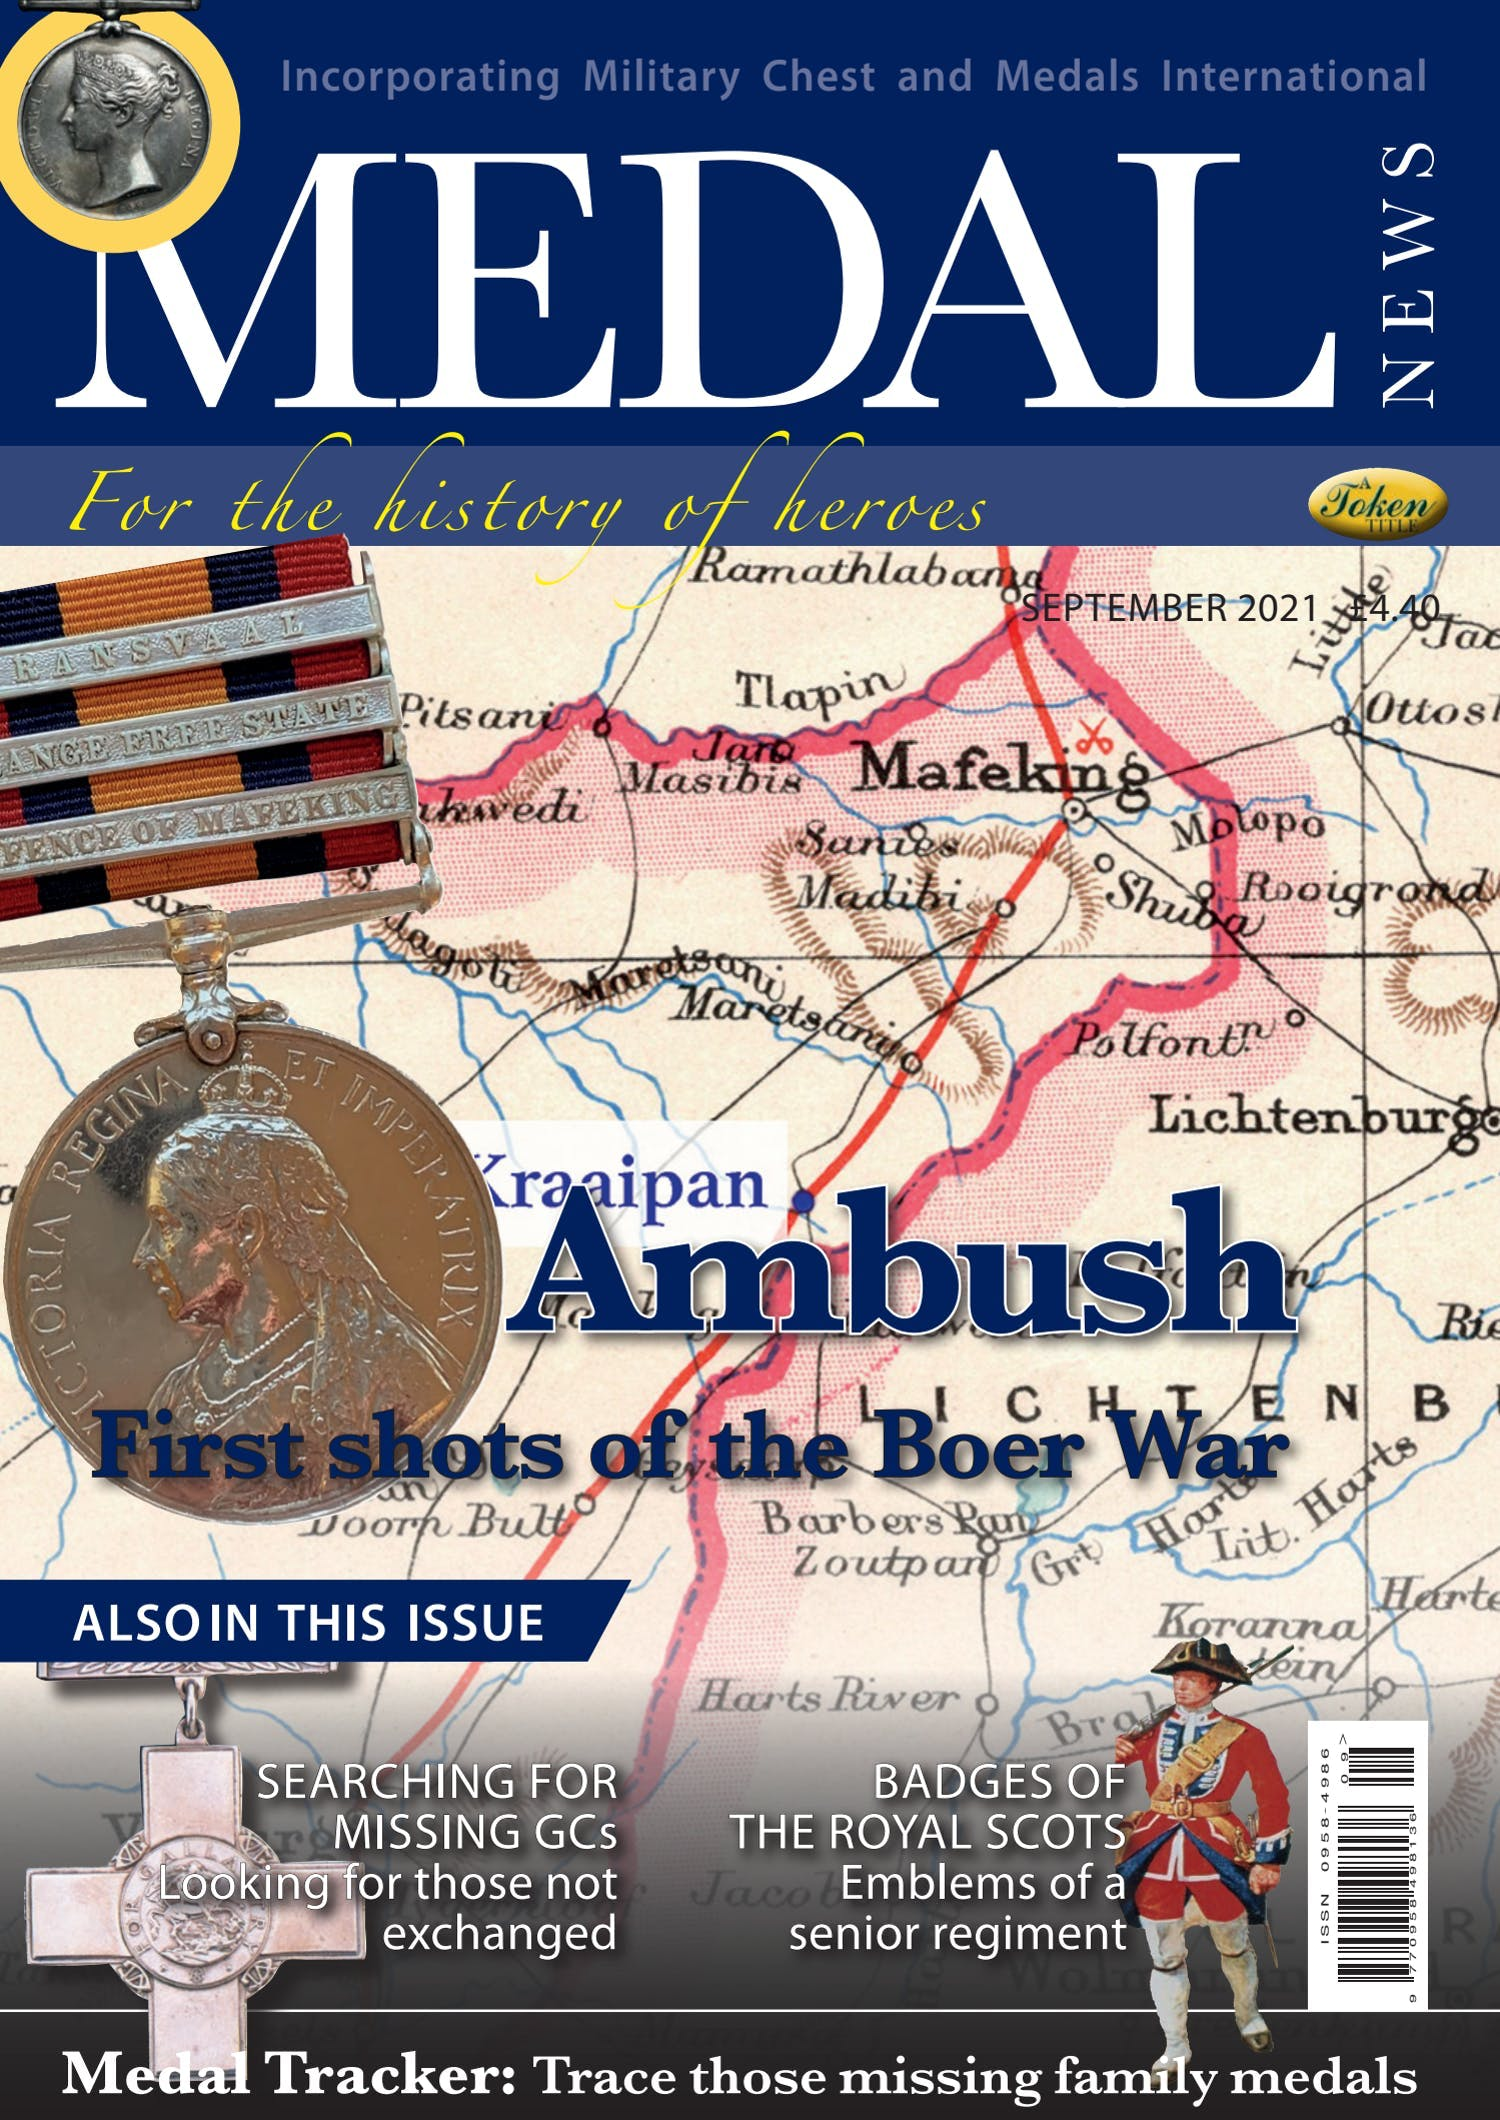 The front cover of Medal News, Volume 59, Number 8, September 2021